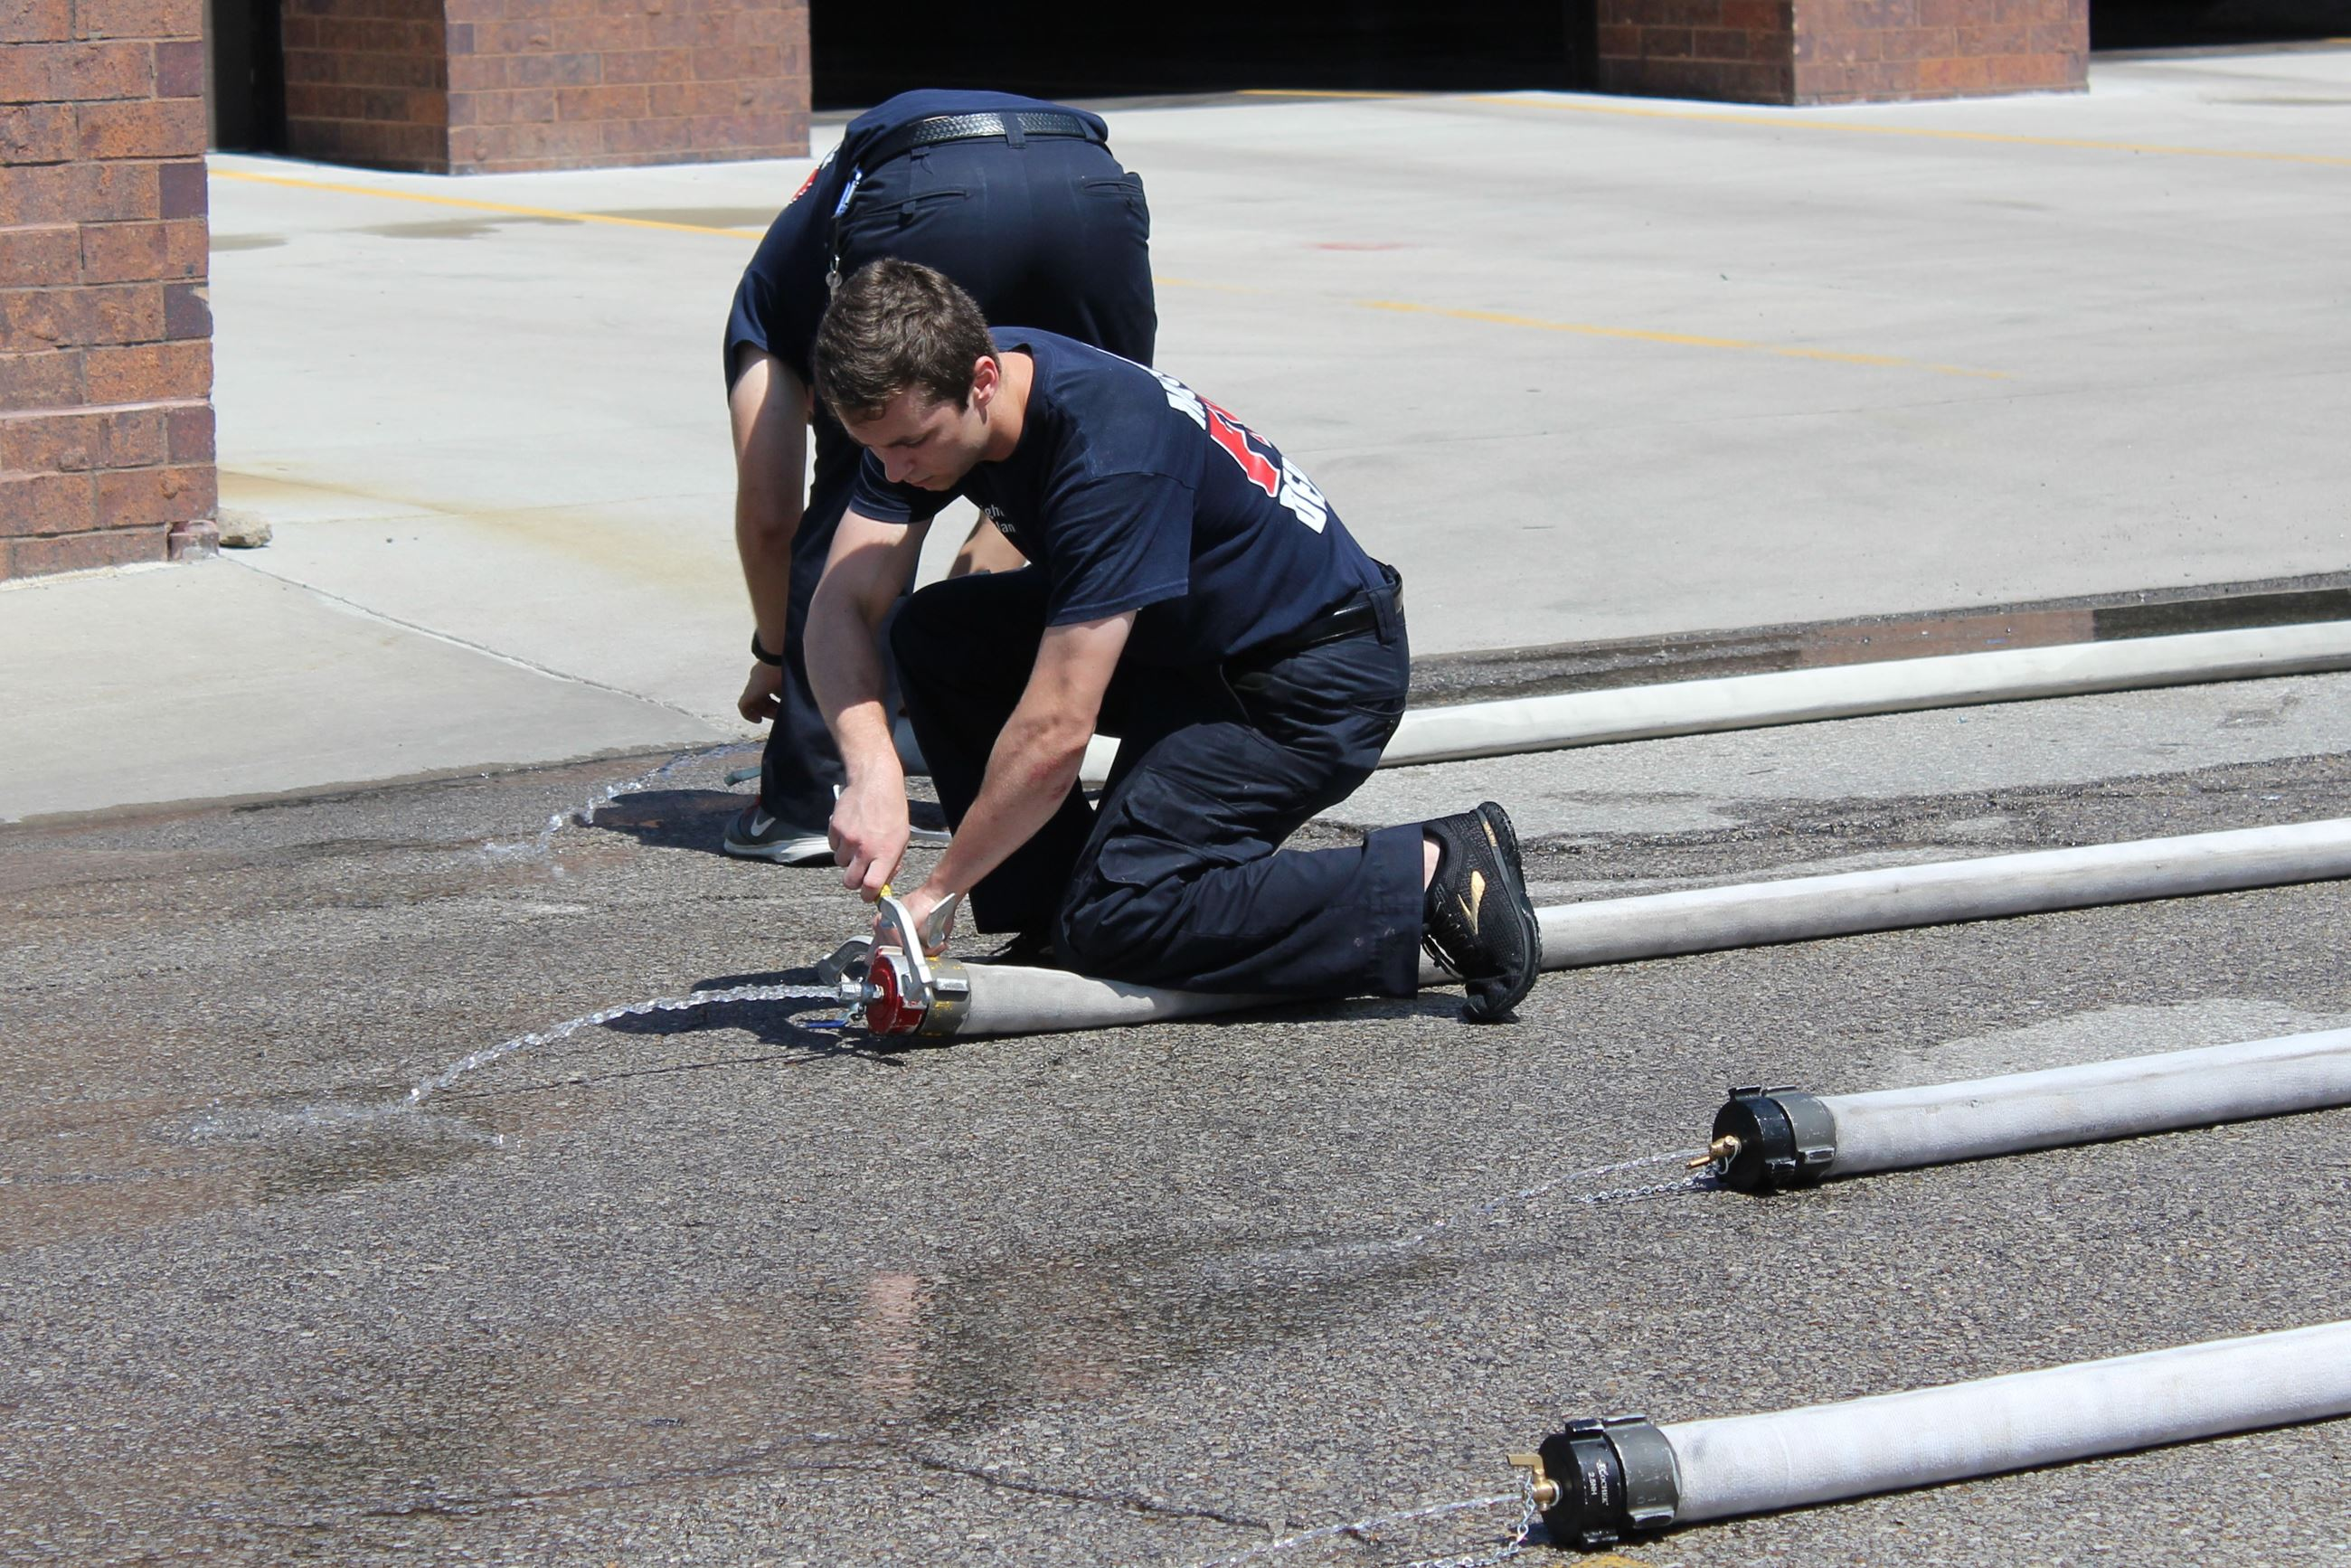 072920 Fire Department Hose Test 002 (JPG)